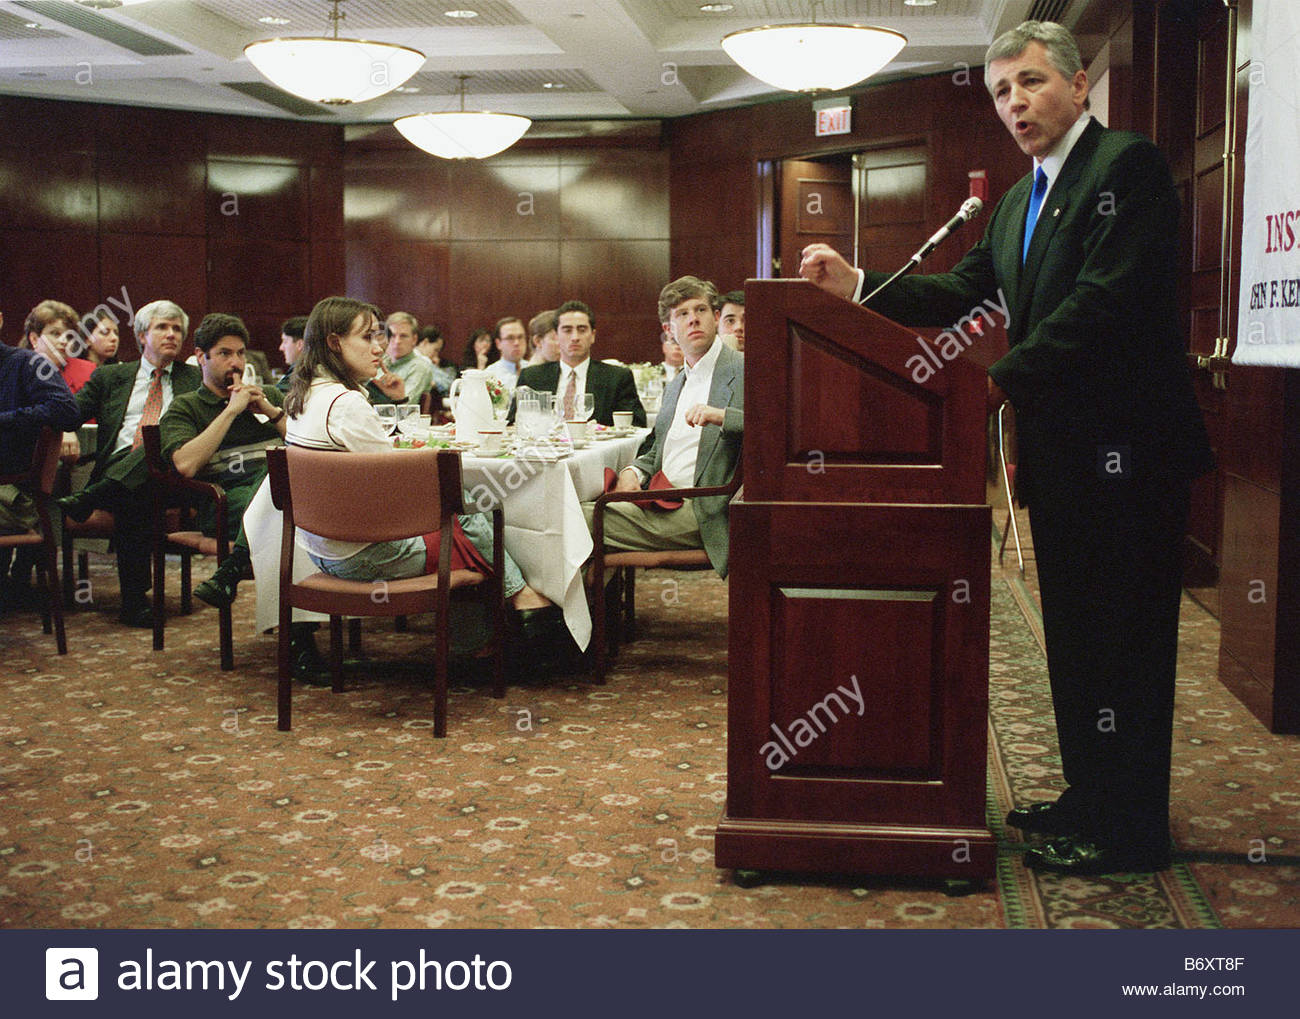 9 29 98 HAGEL Sen Chuck Hagel R Neb delivers his speech on American foriegn policy in the post Cold War era at Harvard - Stock Image